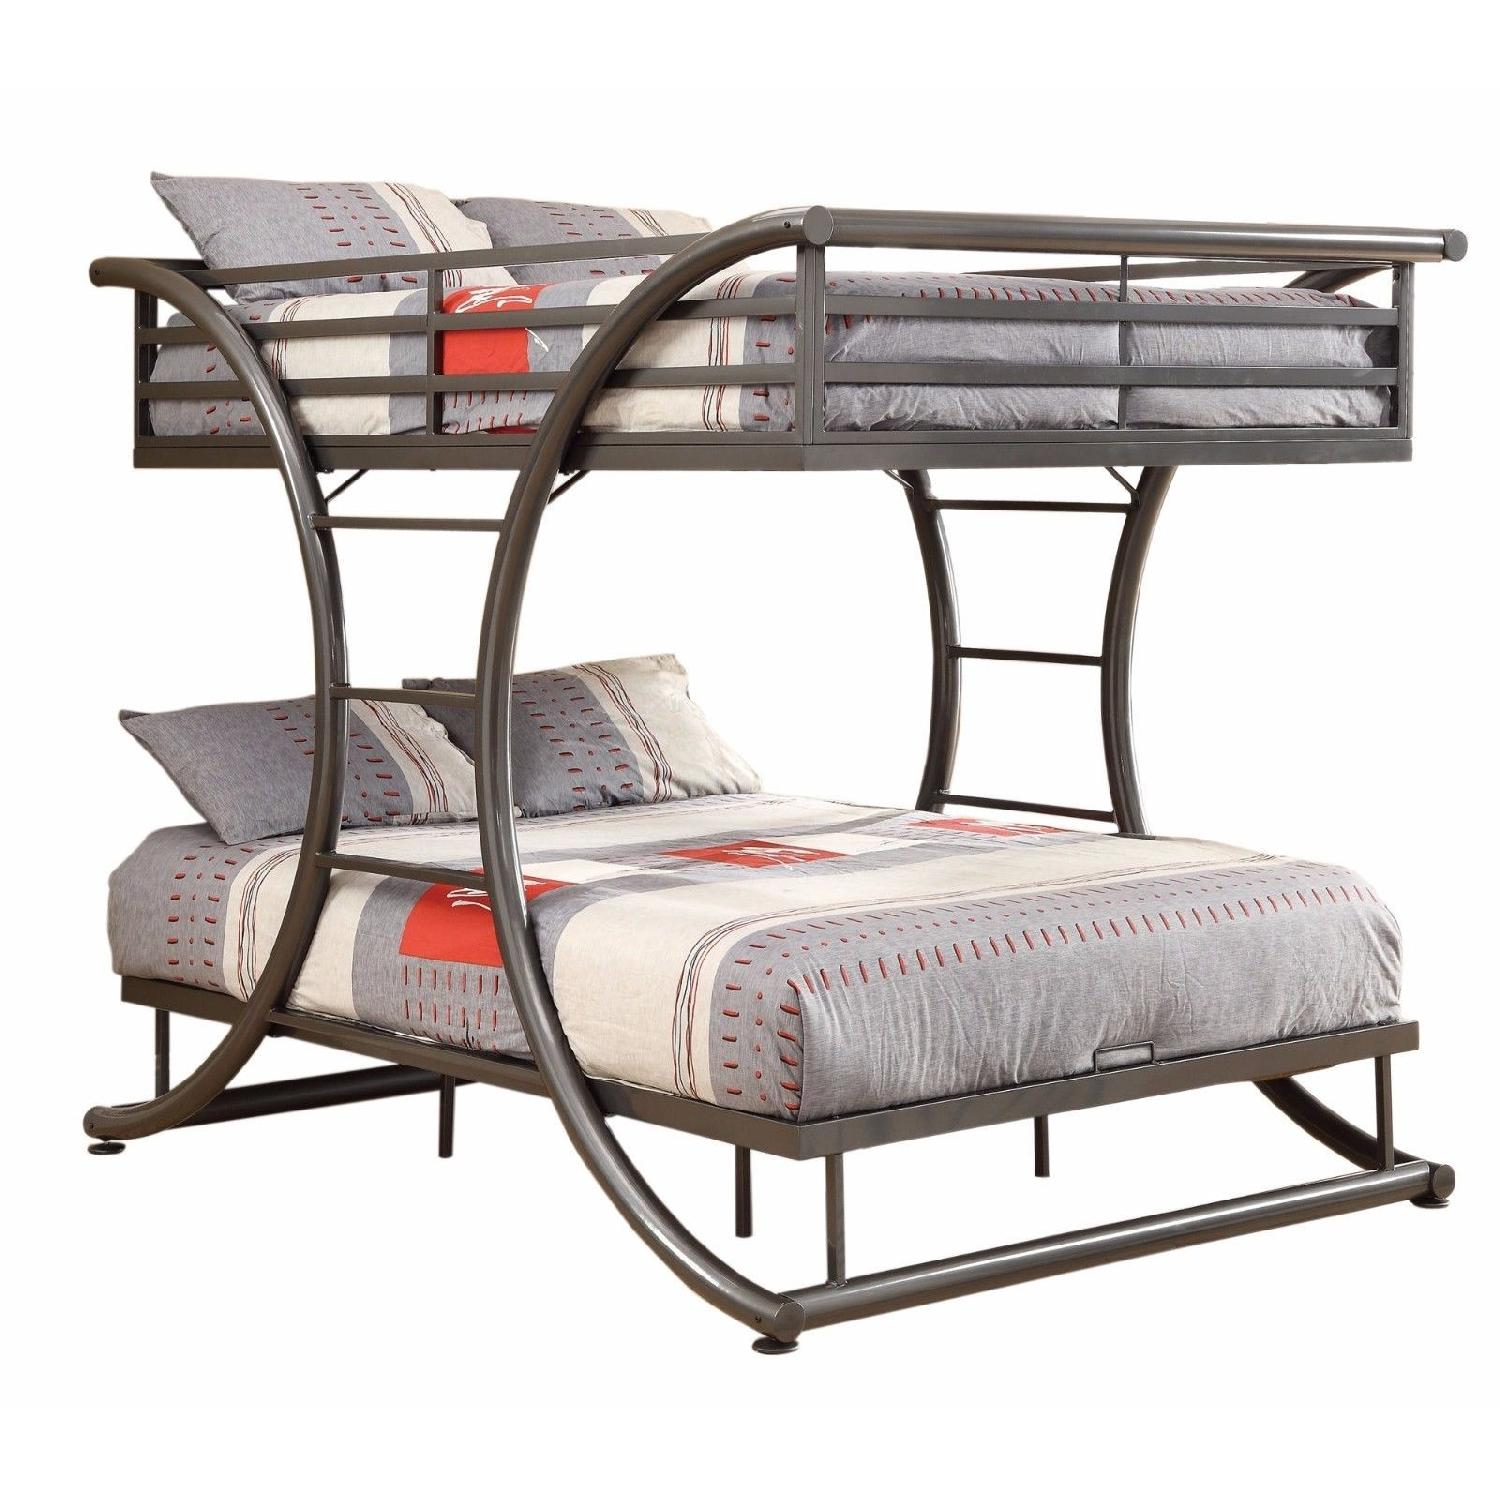 Full Over Full Steel Bunk Bed Finished in Gunmetal Finish - image-0